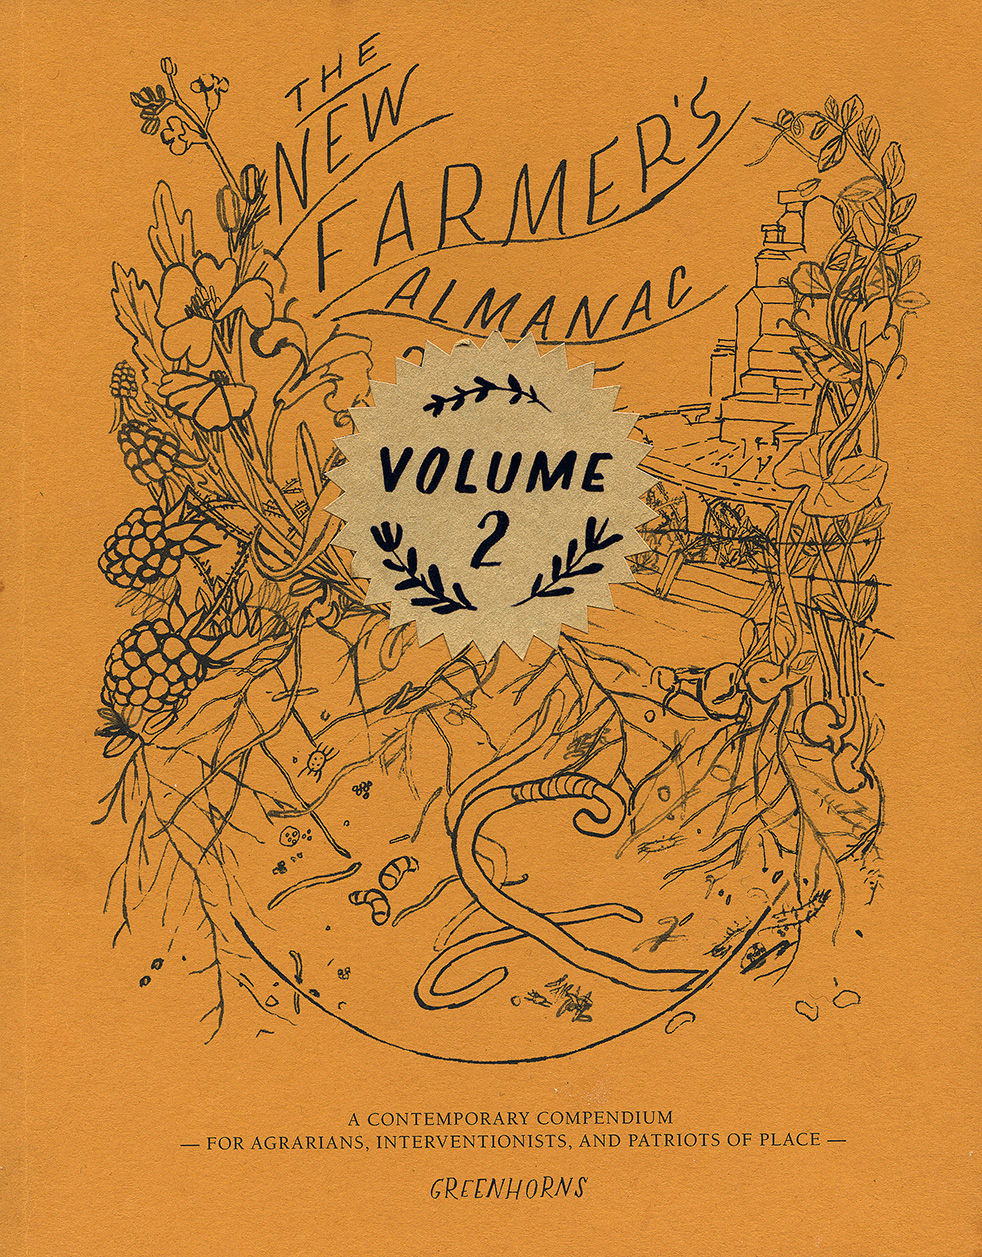 The New Farmer's Almanac